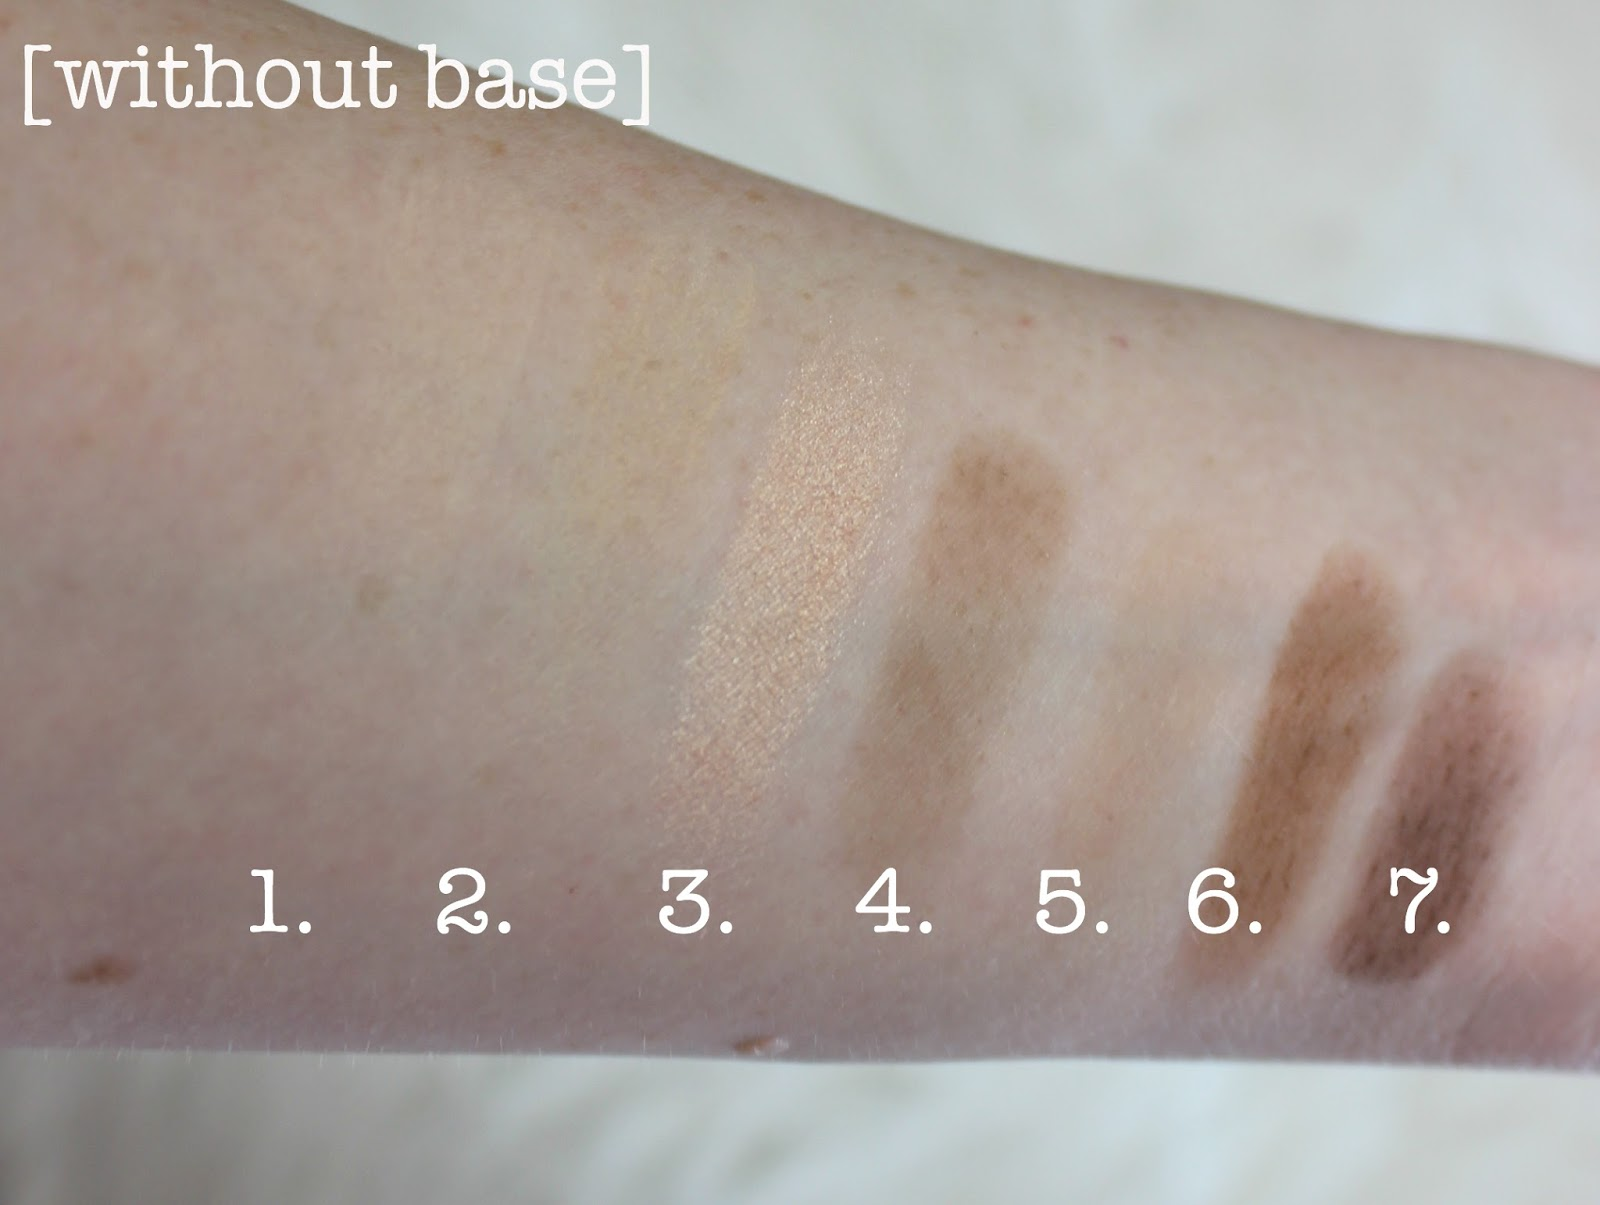 wayne goss paula's choice nude mattes eyeshadow swatches review